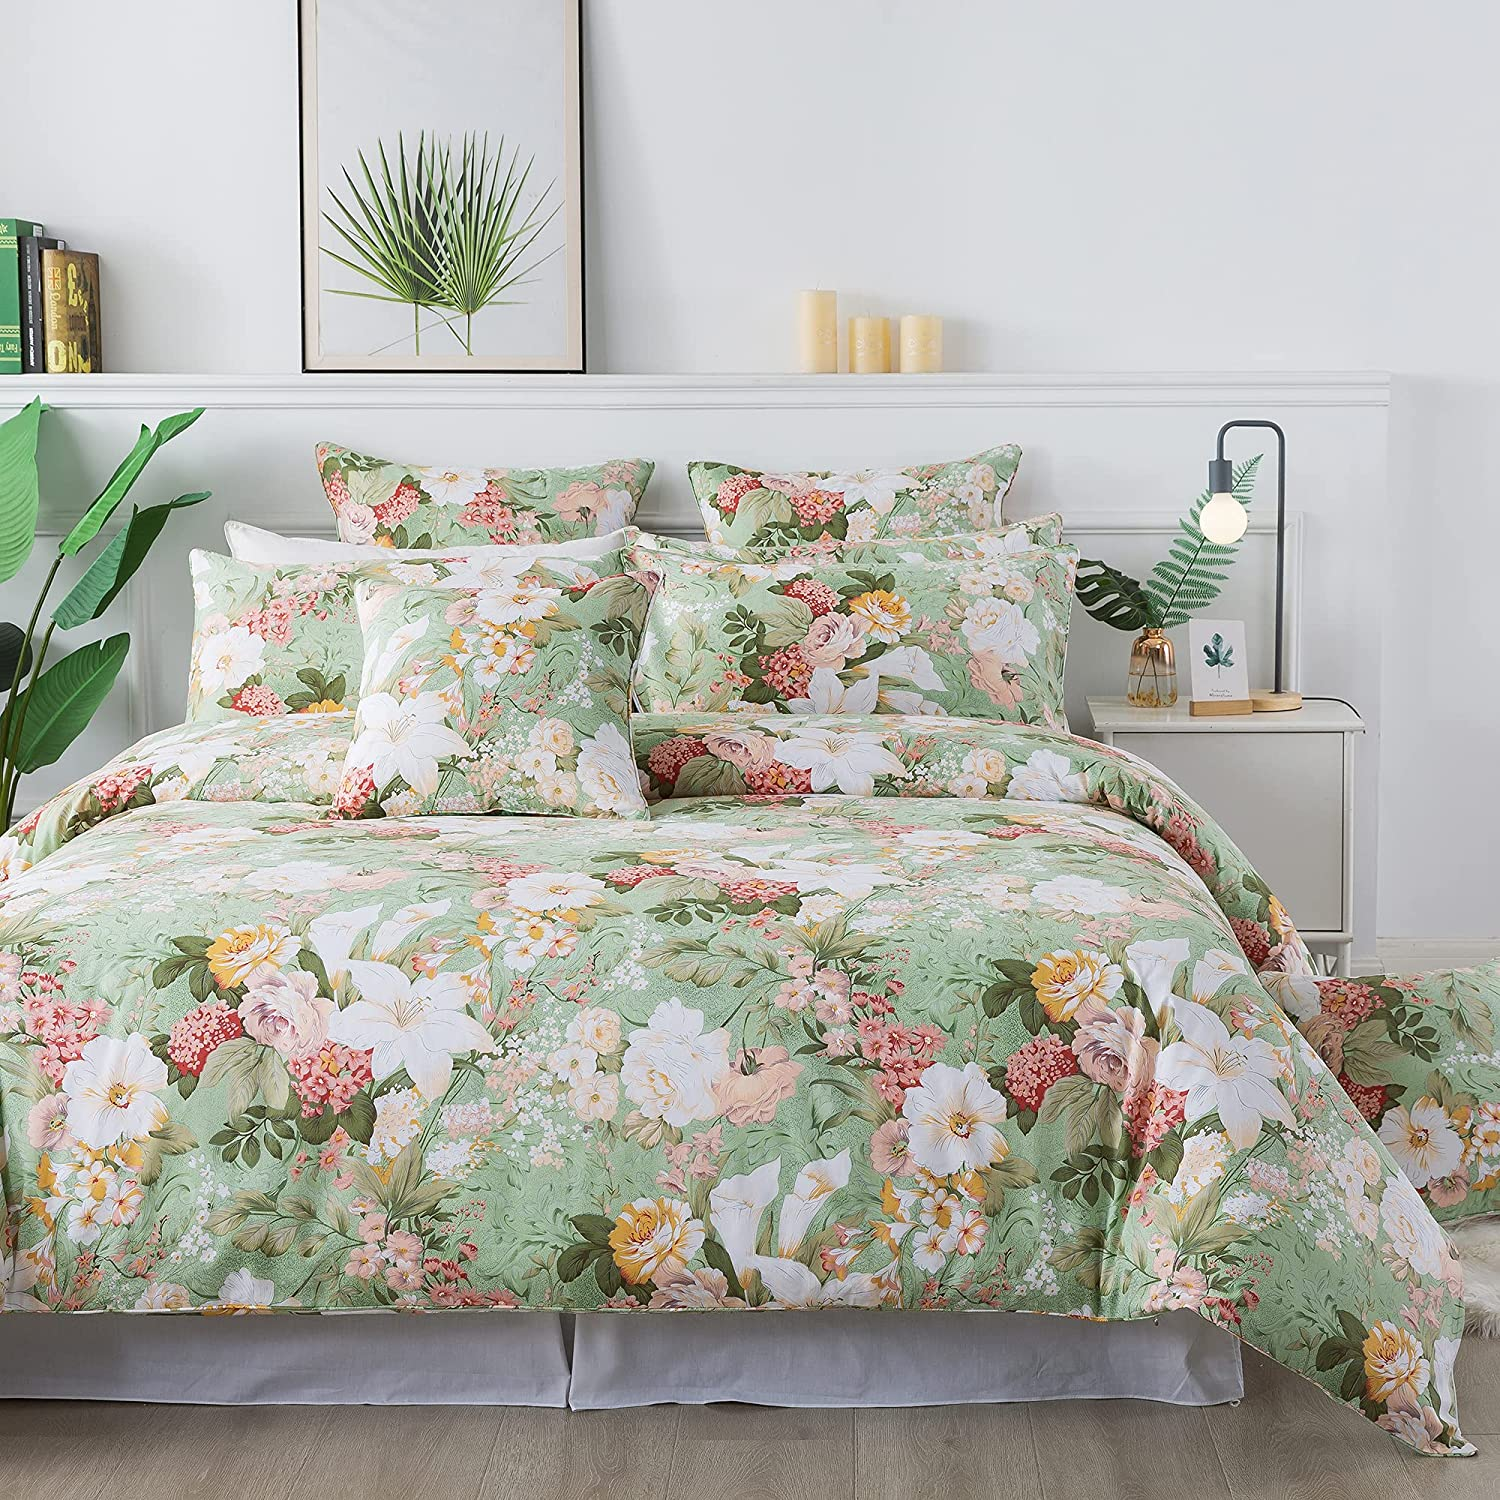 FADFAY Girls Floral Duvet Cover Set Twin 100% Cotton Bedding 600 TC Mint Green and White Flower Elegant Garden Lily Printed Comforter Cover Zipper Corner Ties Soft Hypoallergenic Bed Cover 3 Pcs